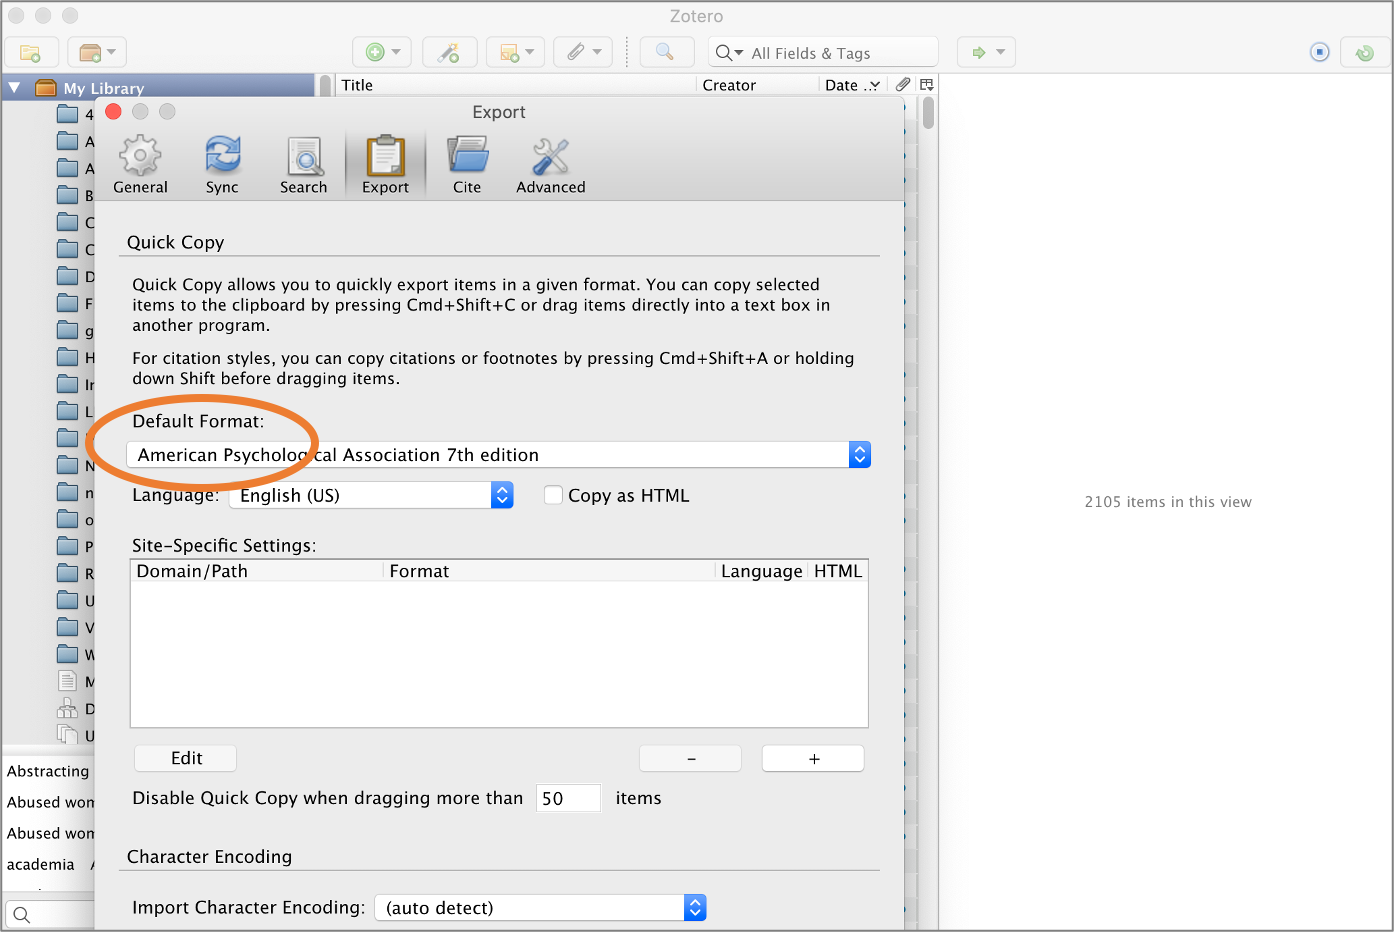 The export preference settings in the download Zotero library.